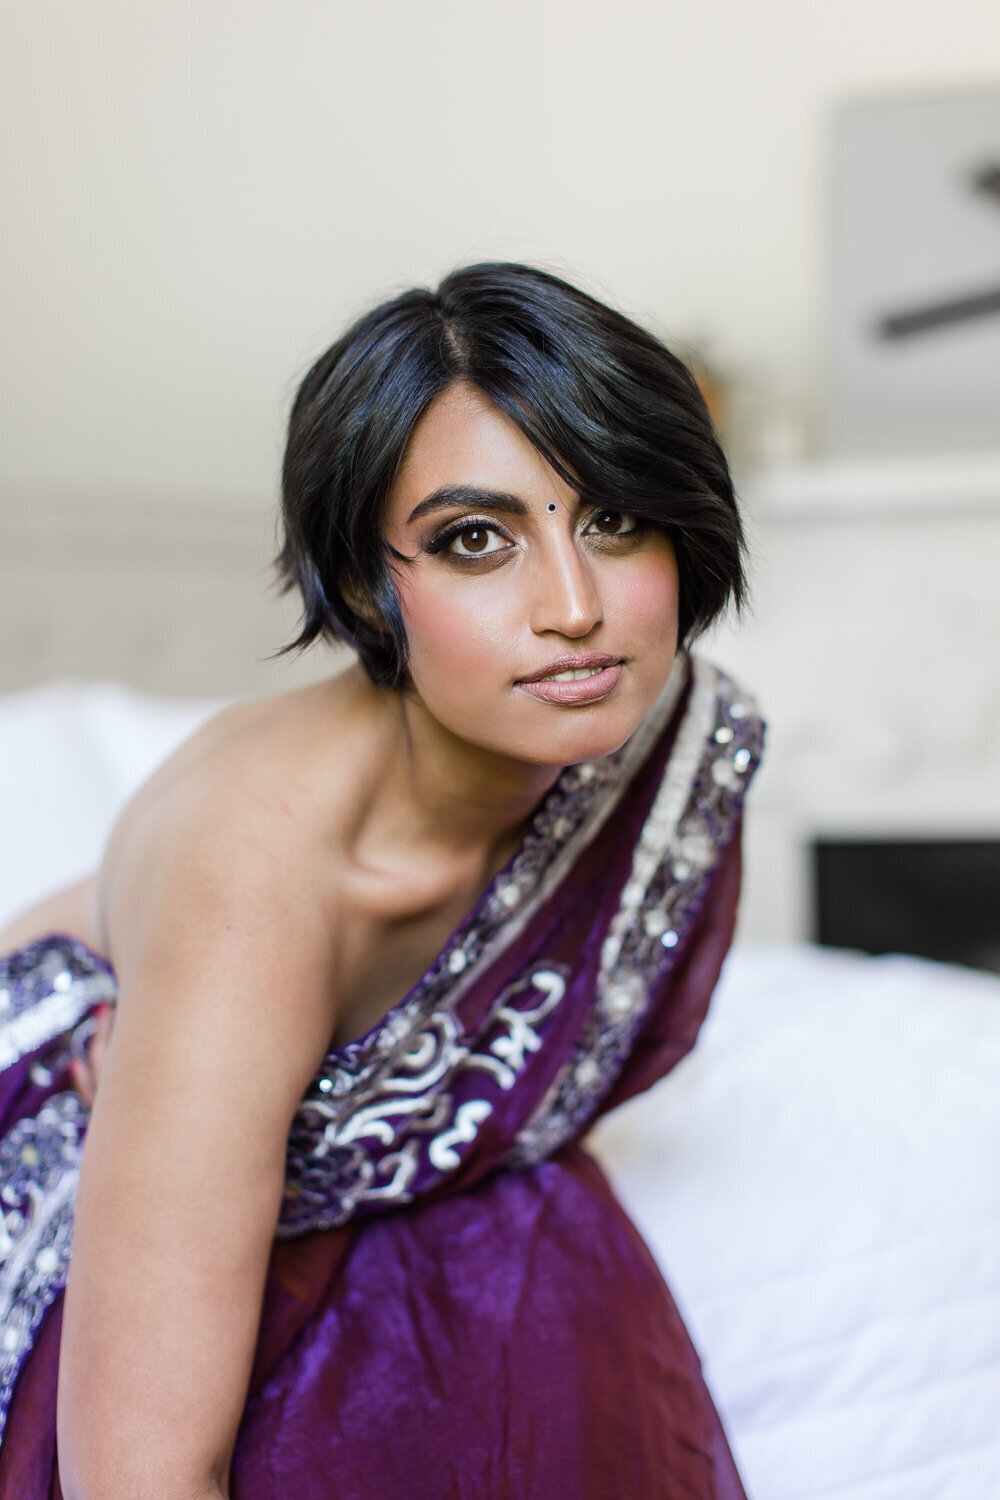 indian saree boudoir beauty portrait